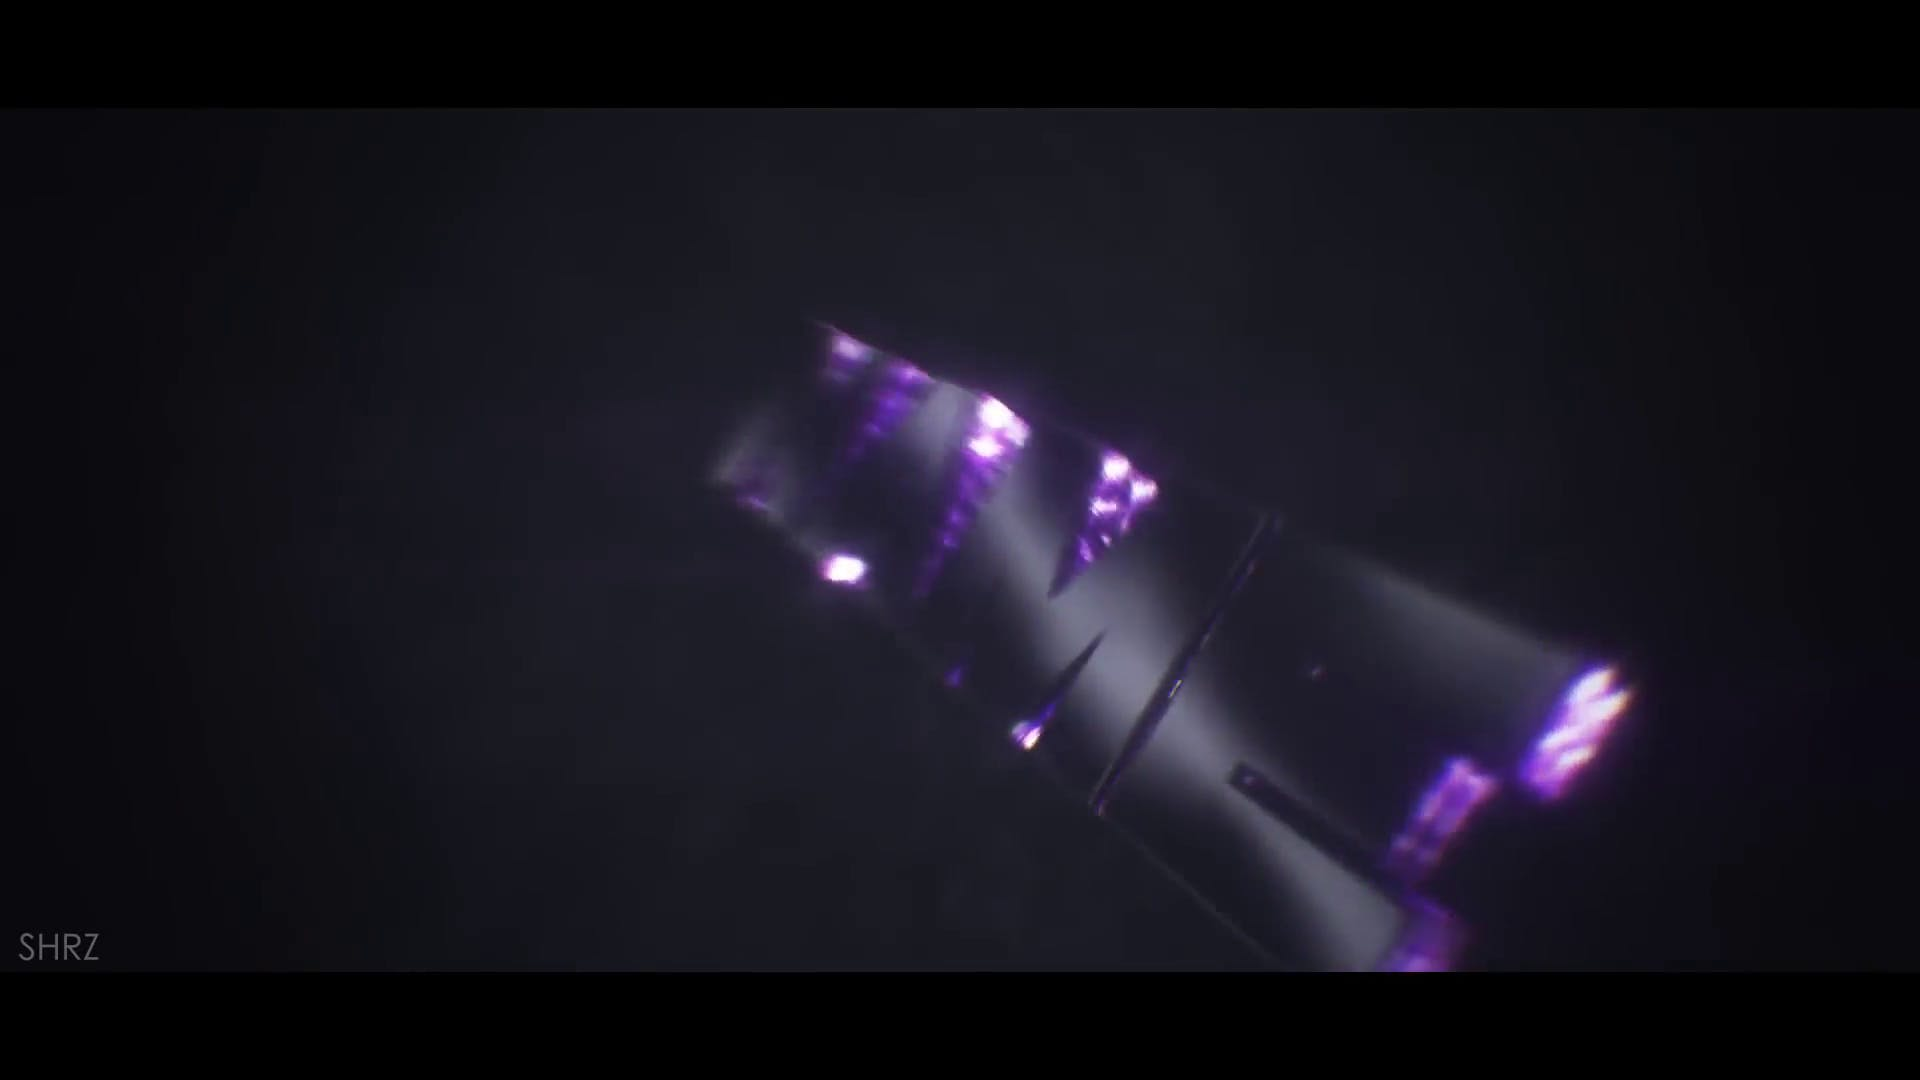 Dark Purple Cinema 4D After Effects Intro Template FREE DOWNLOAD